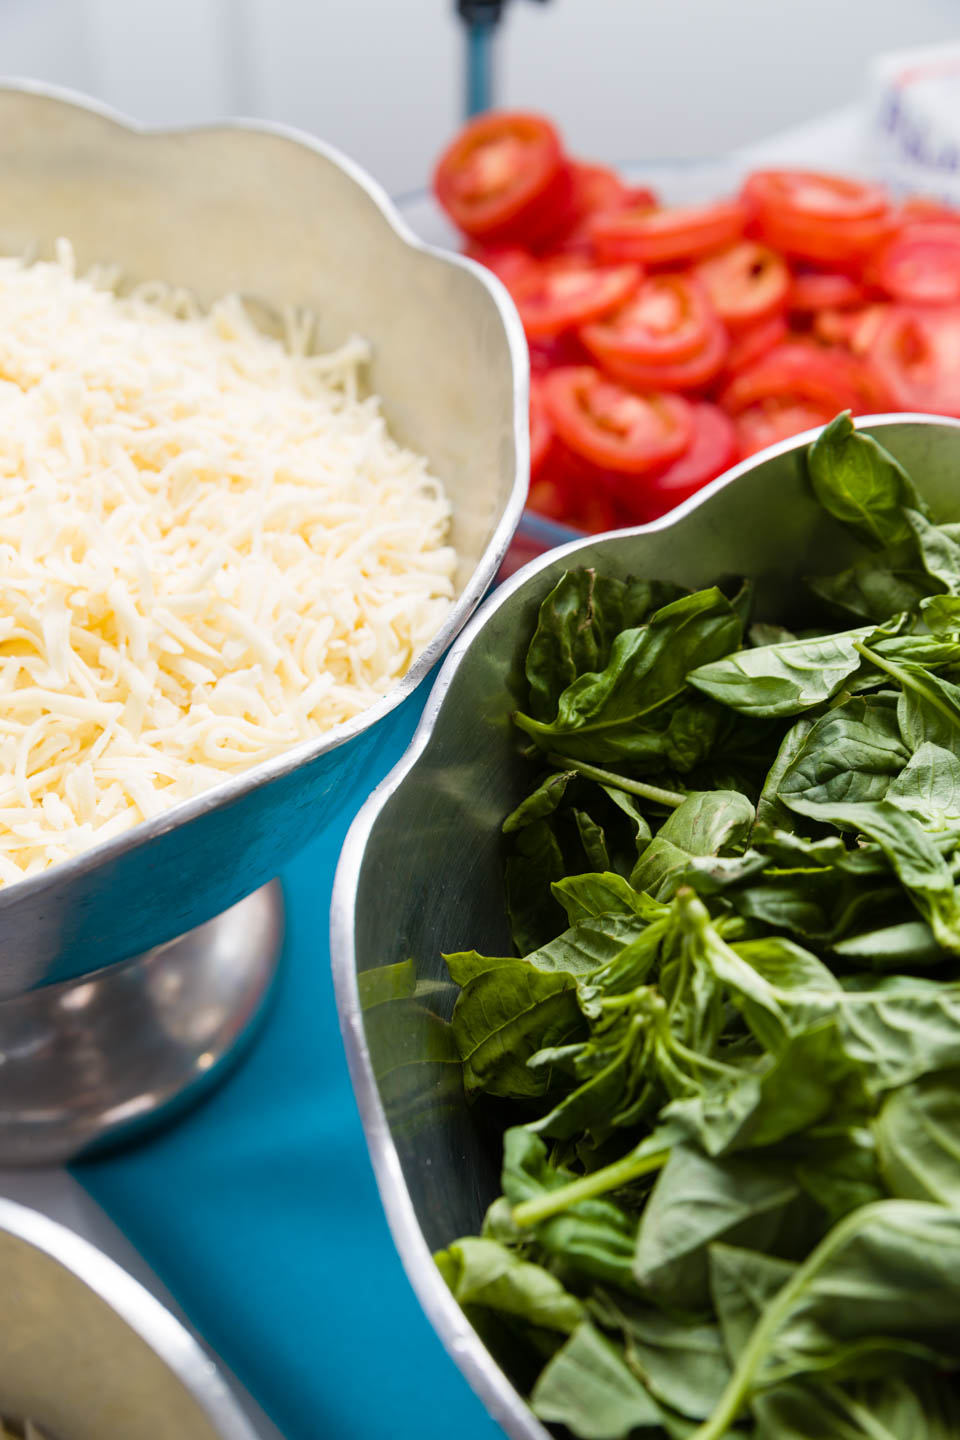 Toppings for margherita pizza... tomatoes, basil, and mozzarella